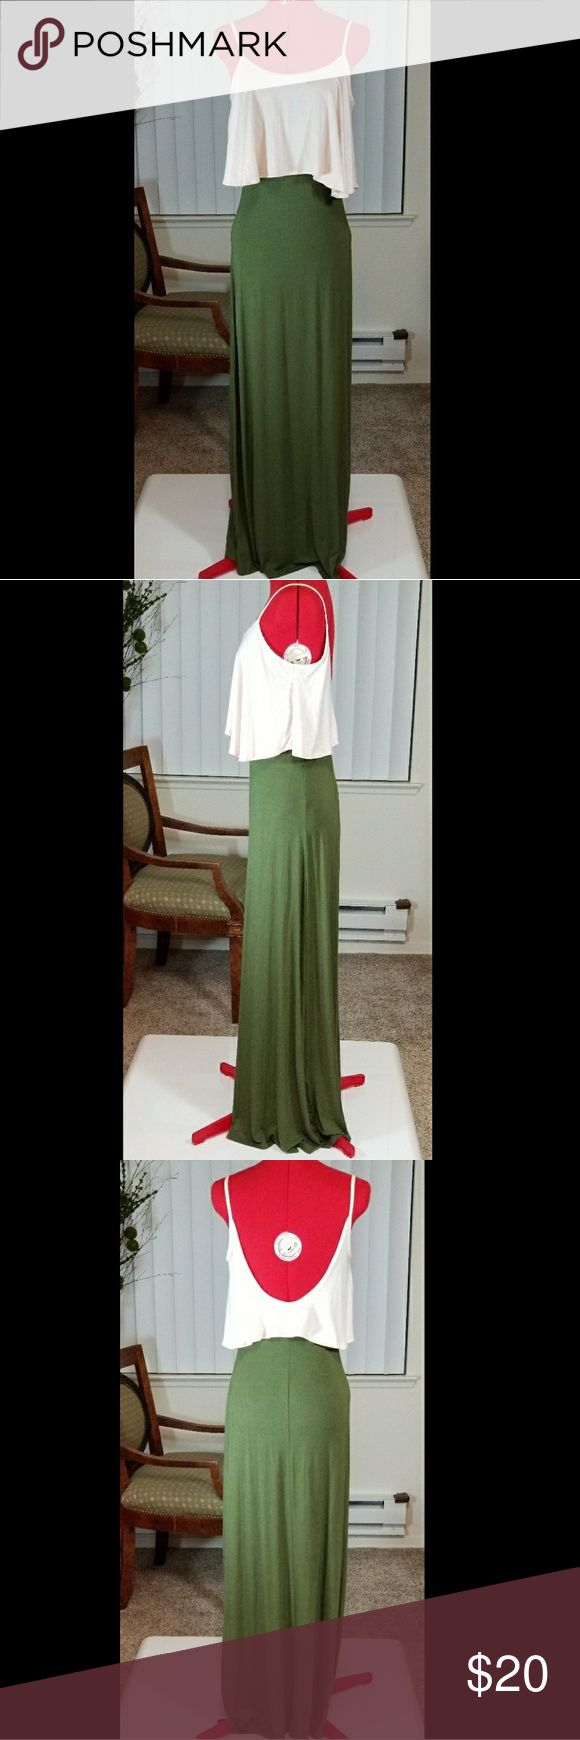 """UO Staring at Stars Maxi Dress Small Urban Outfitters-Staring at Stars  Maxi Dress Spaghetti Strap  Small Moss green and cream color Dress is approximately 56"""" from the straps.  *Dress form is red. Lighting may change the way the colors turn out on photo. Will take new photo in natural light soon. Staring at Stars Dresses Maxi"""